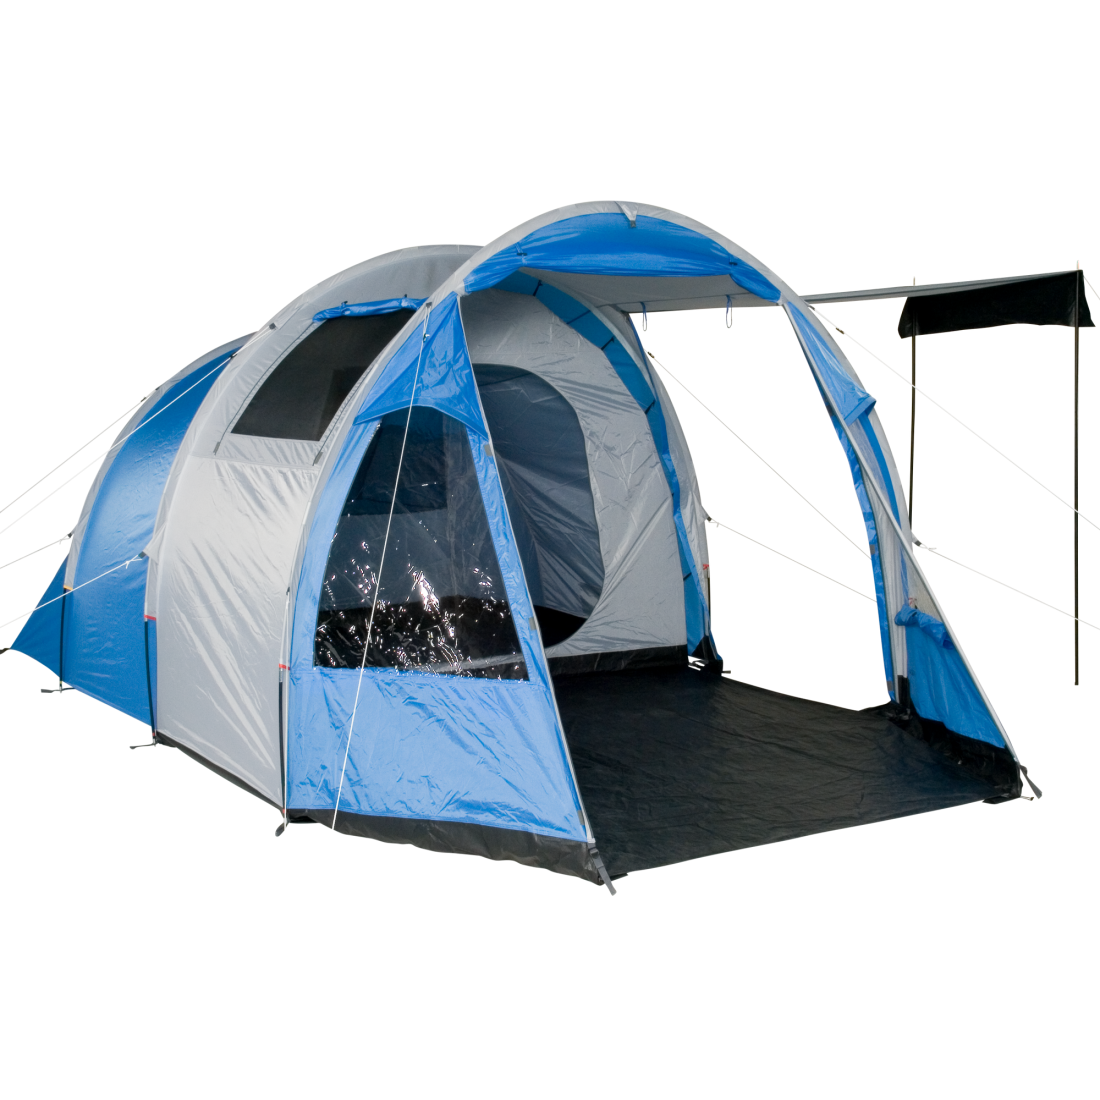 Tent Family tunnel tent with large living area windows ventilation and two entrances  sc 1 st  C&ing-Outdoor.eu & Buy Camping tents at Camping Outdoor online.